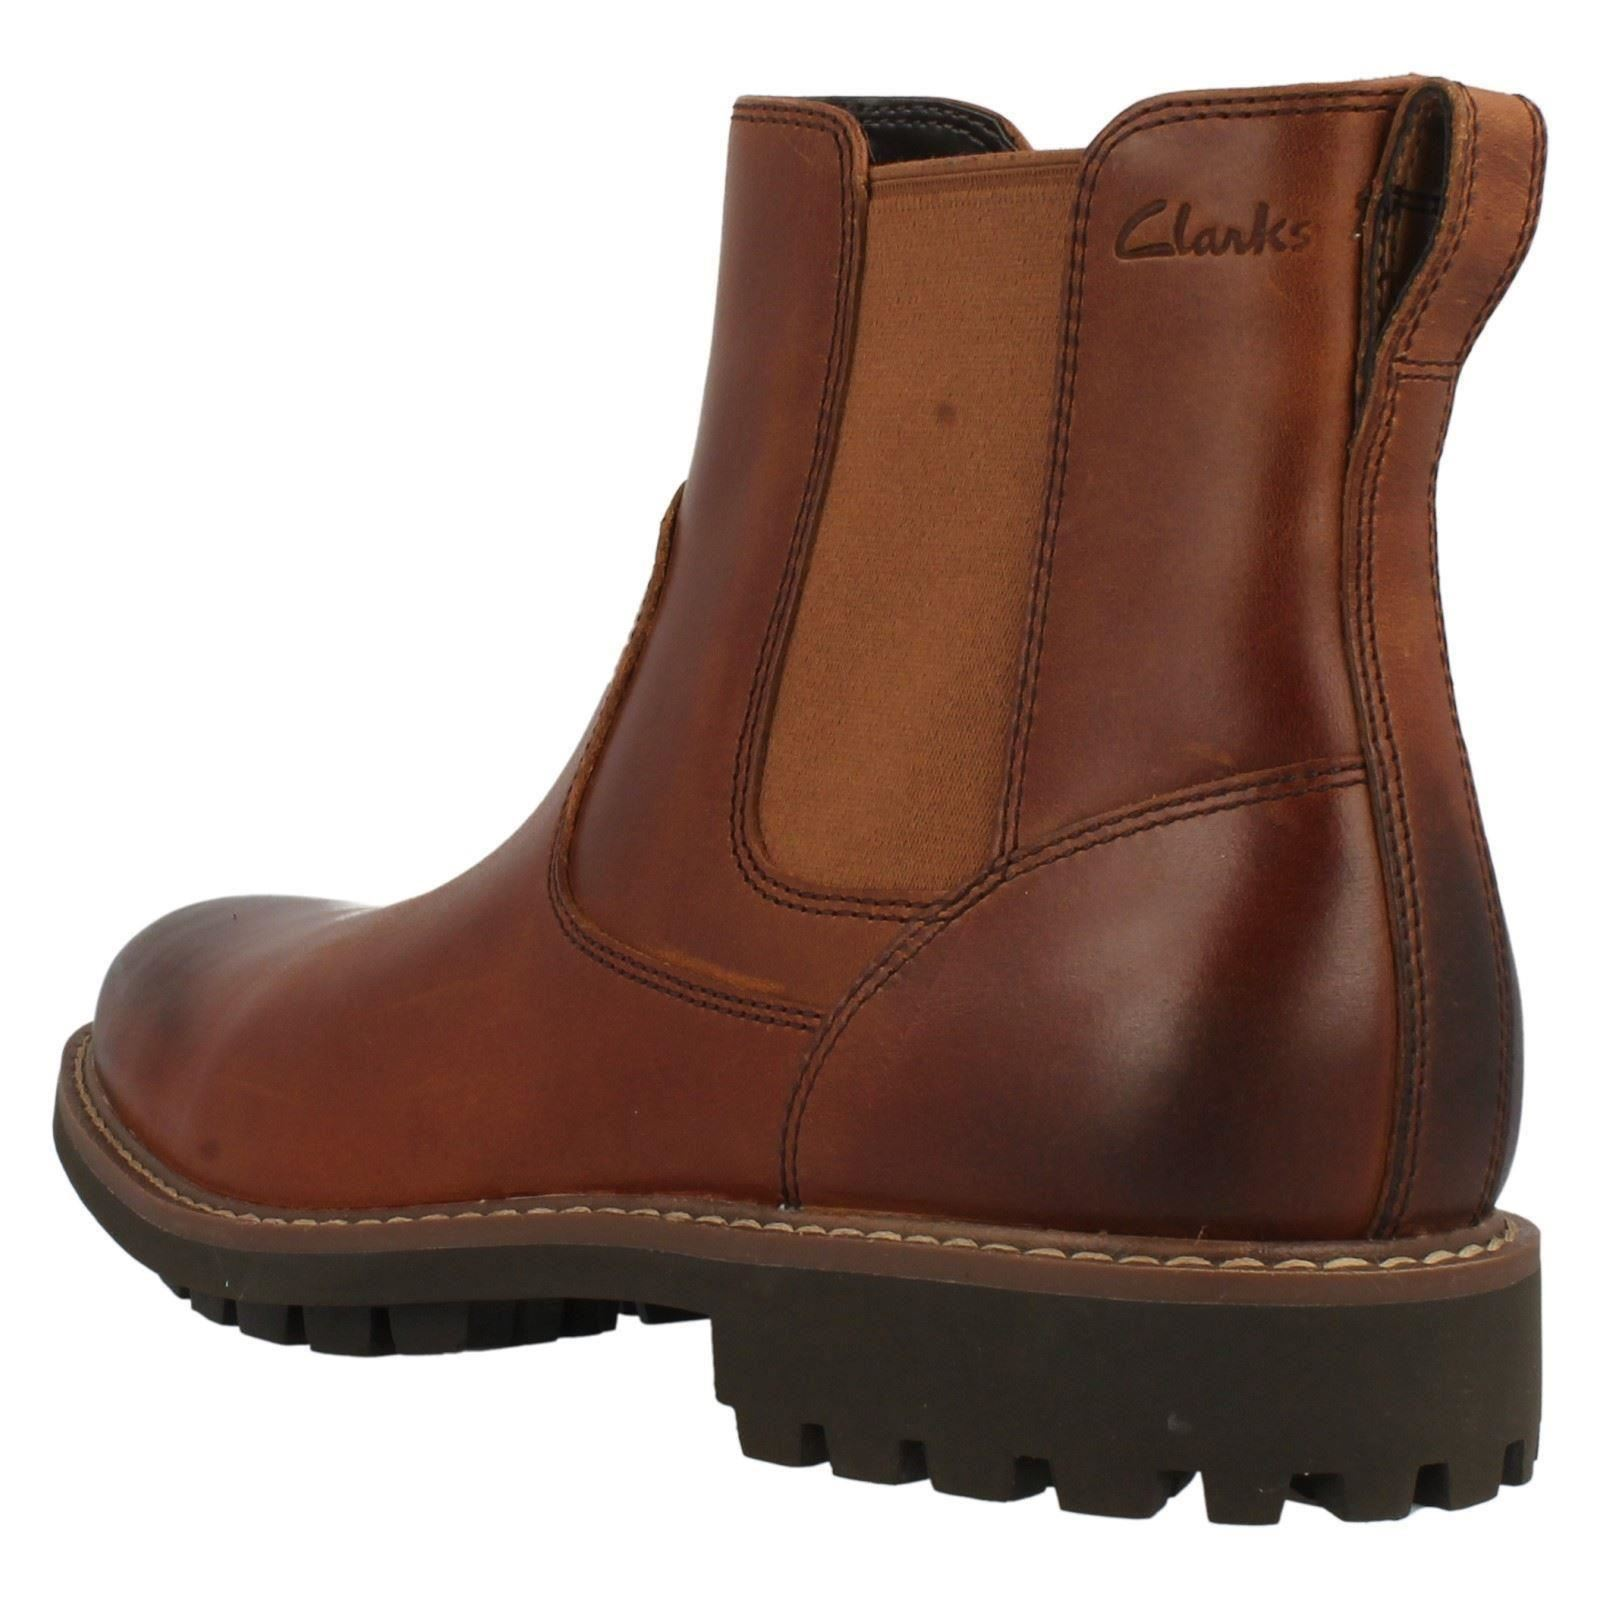 Find great deals on eBay for mens chelsea boots. Shop with confidence.